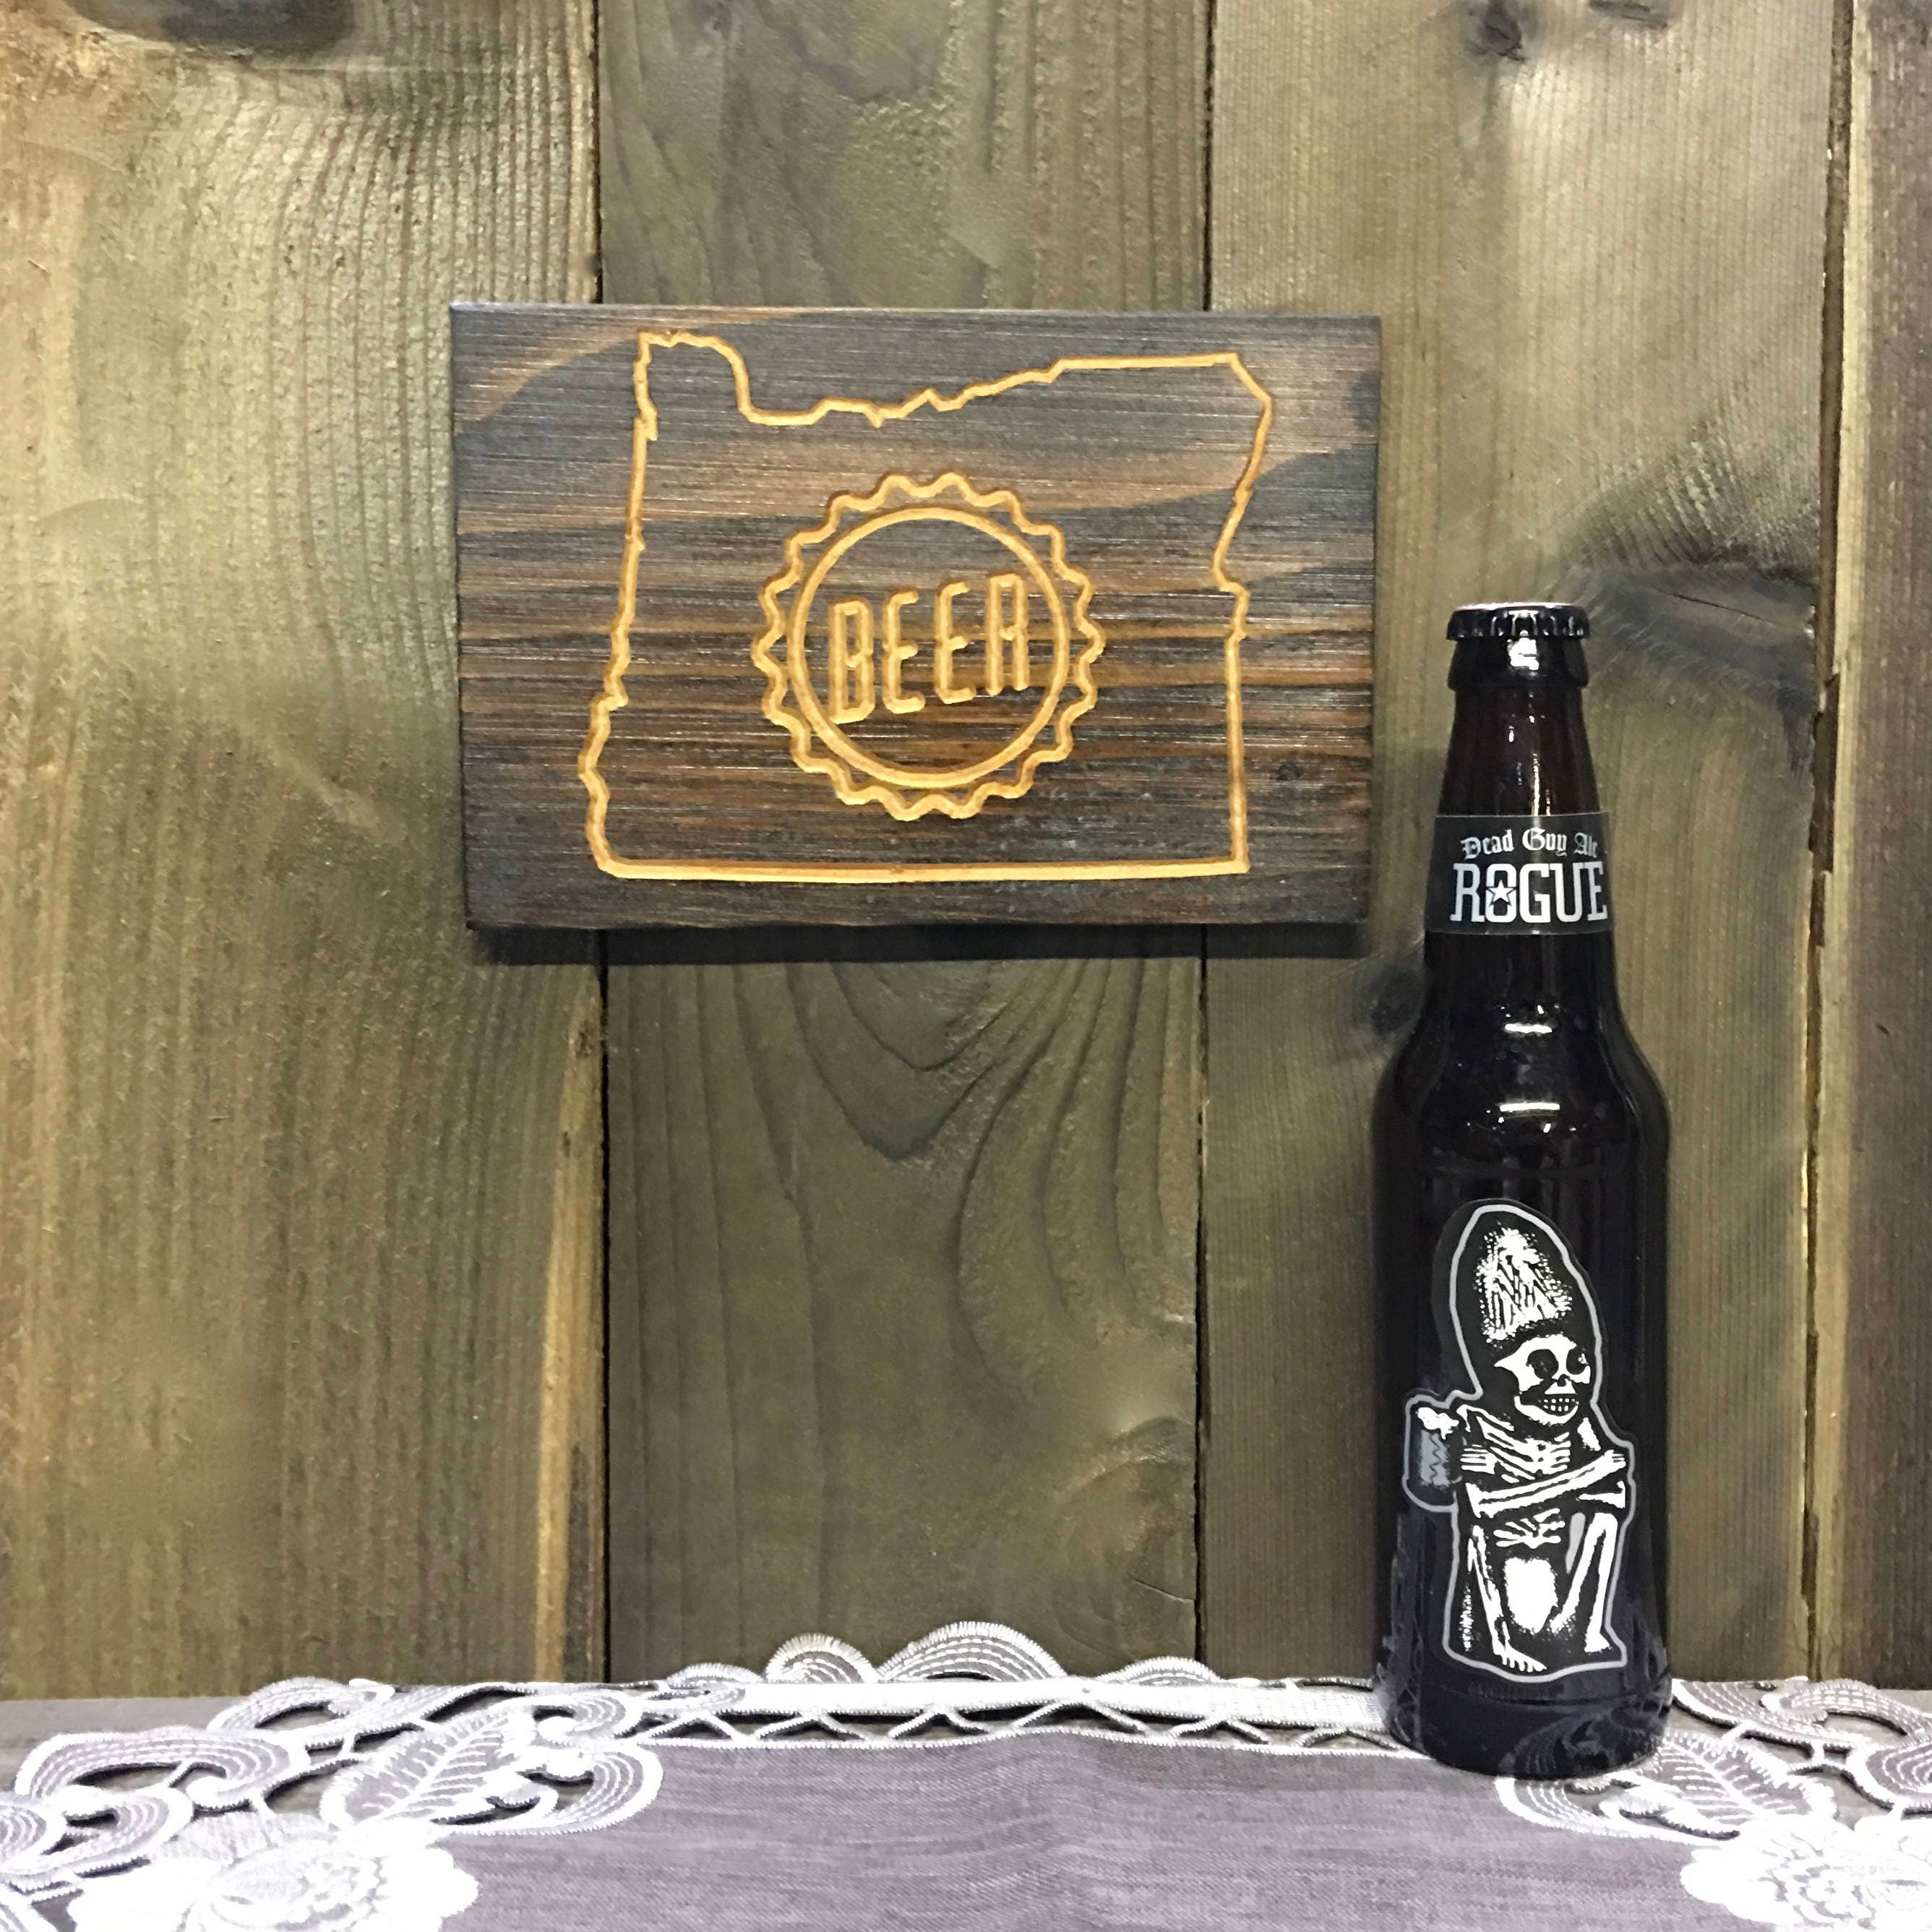 Small Gifts For Man Cave : Small oregon beer sign plaque bend home brew lover man